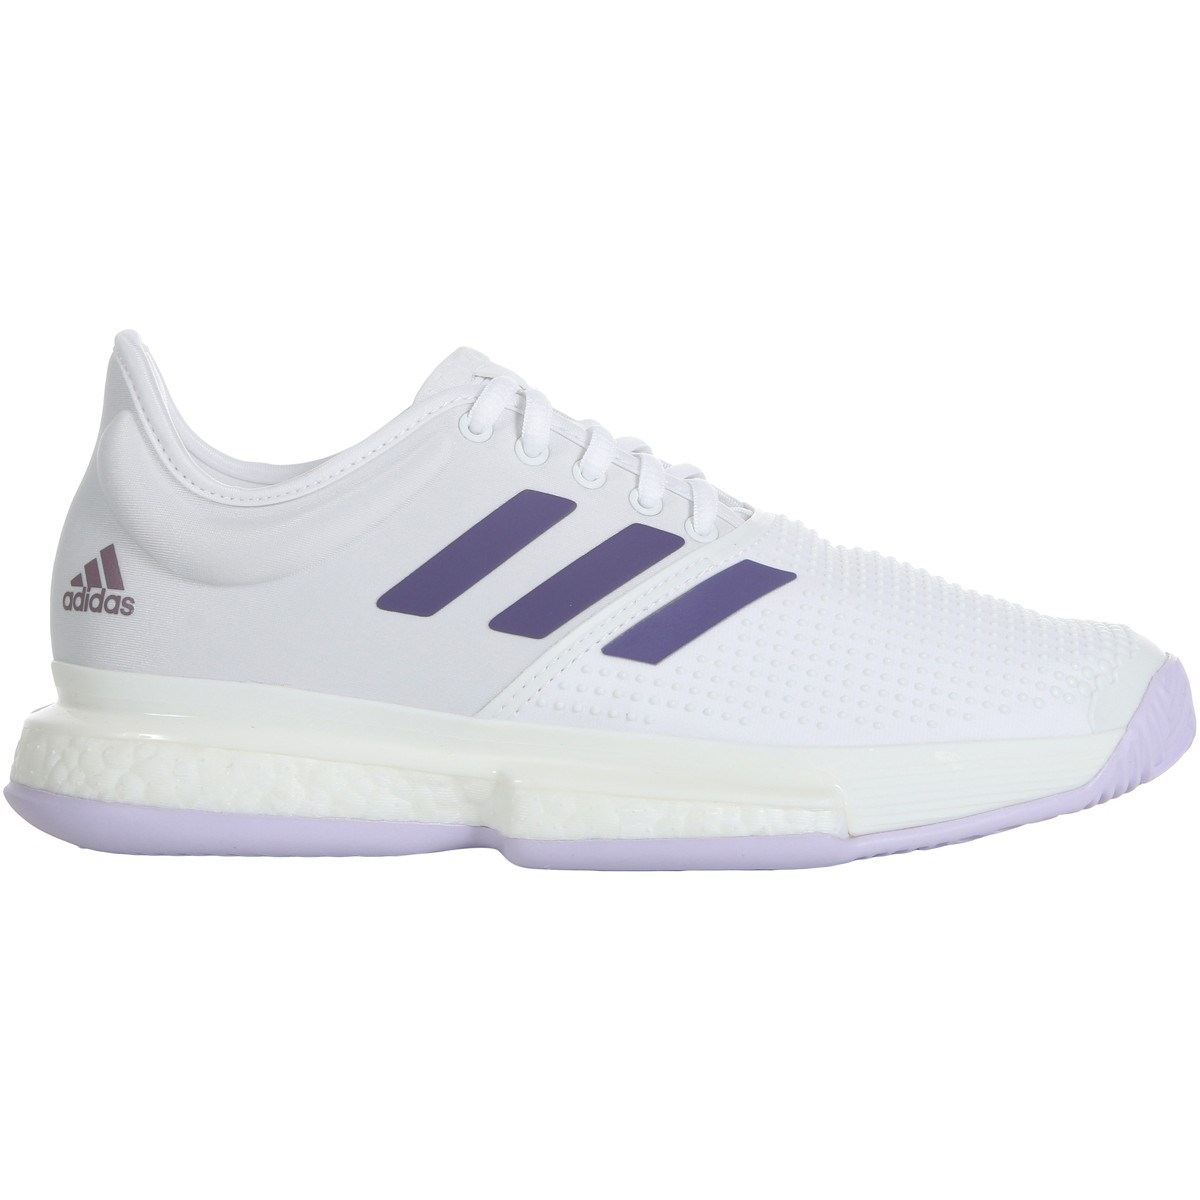 CHAUSSURES ADIDAS FEMME SOLECOURT BOOST TOUTES SURFACES